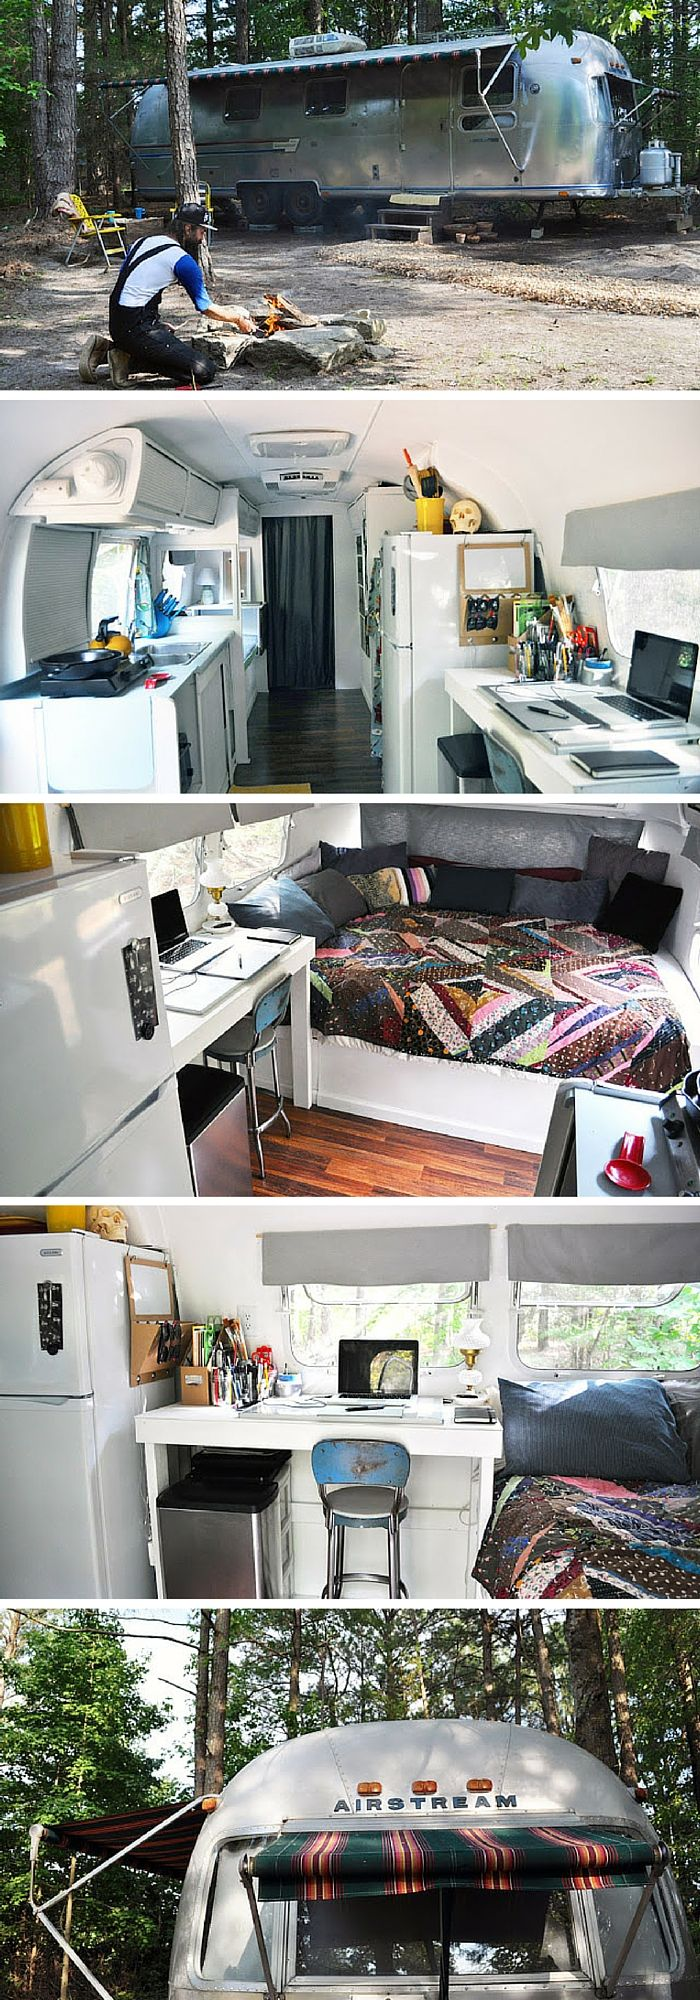 A 1978 Airstream trailer that was purchased for $5,000 nd turned into a home for another $1,500. Measures 188 square feet.